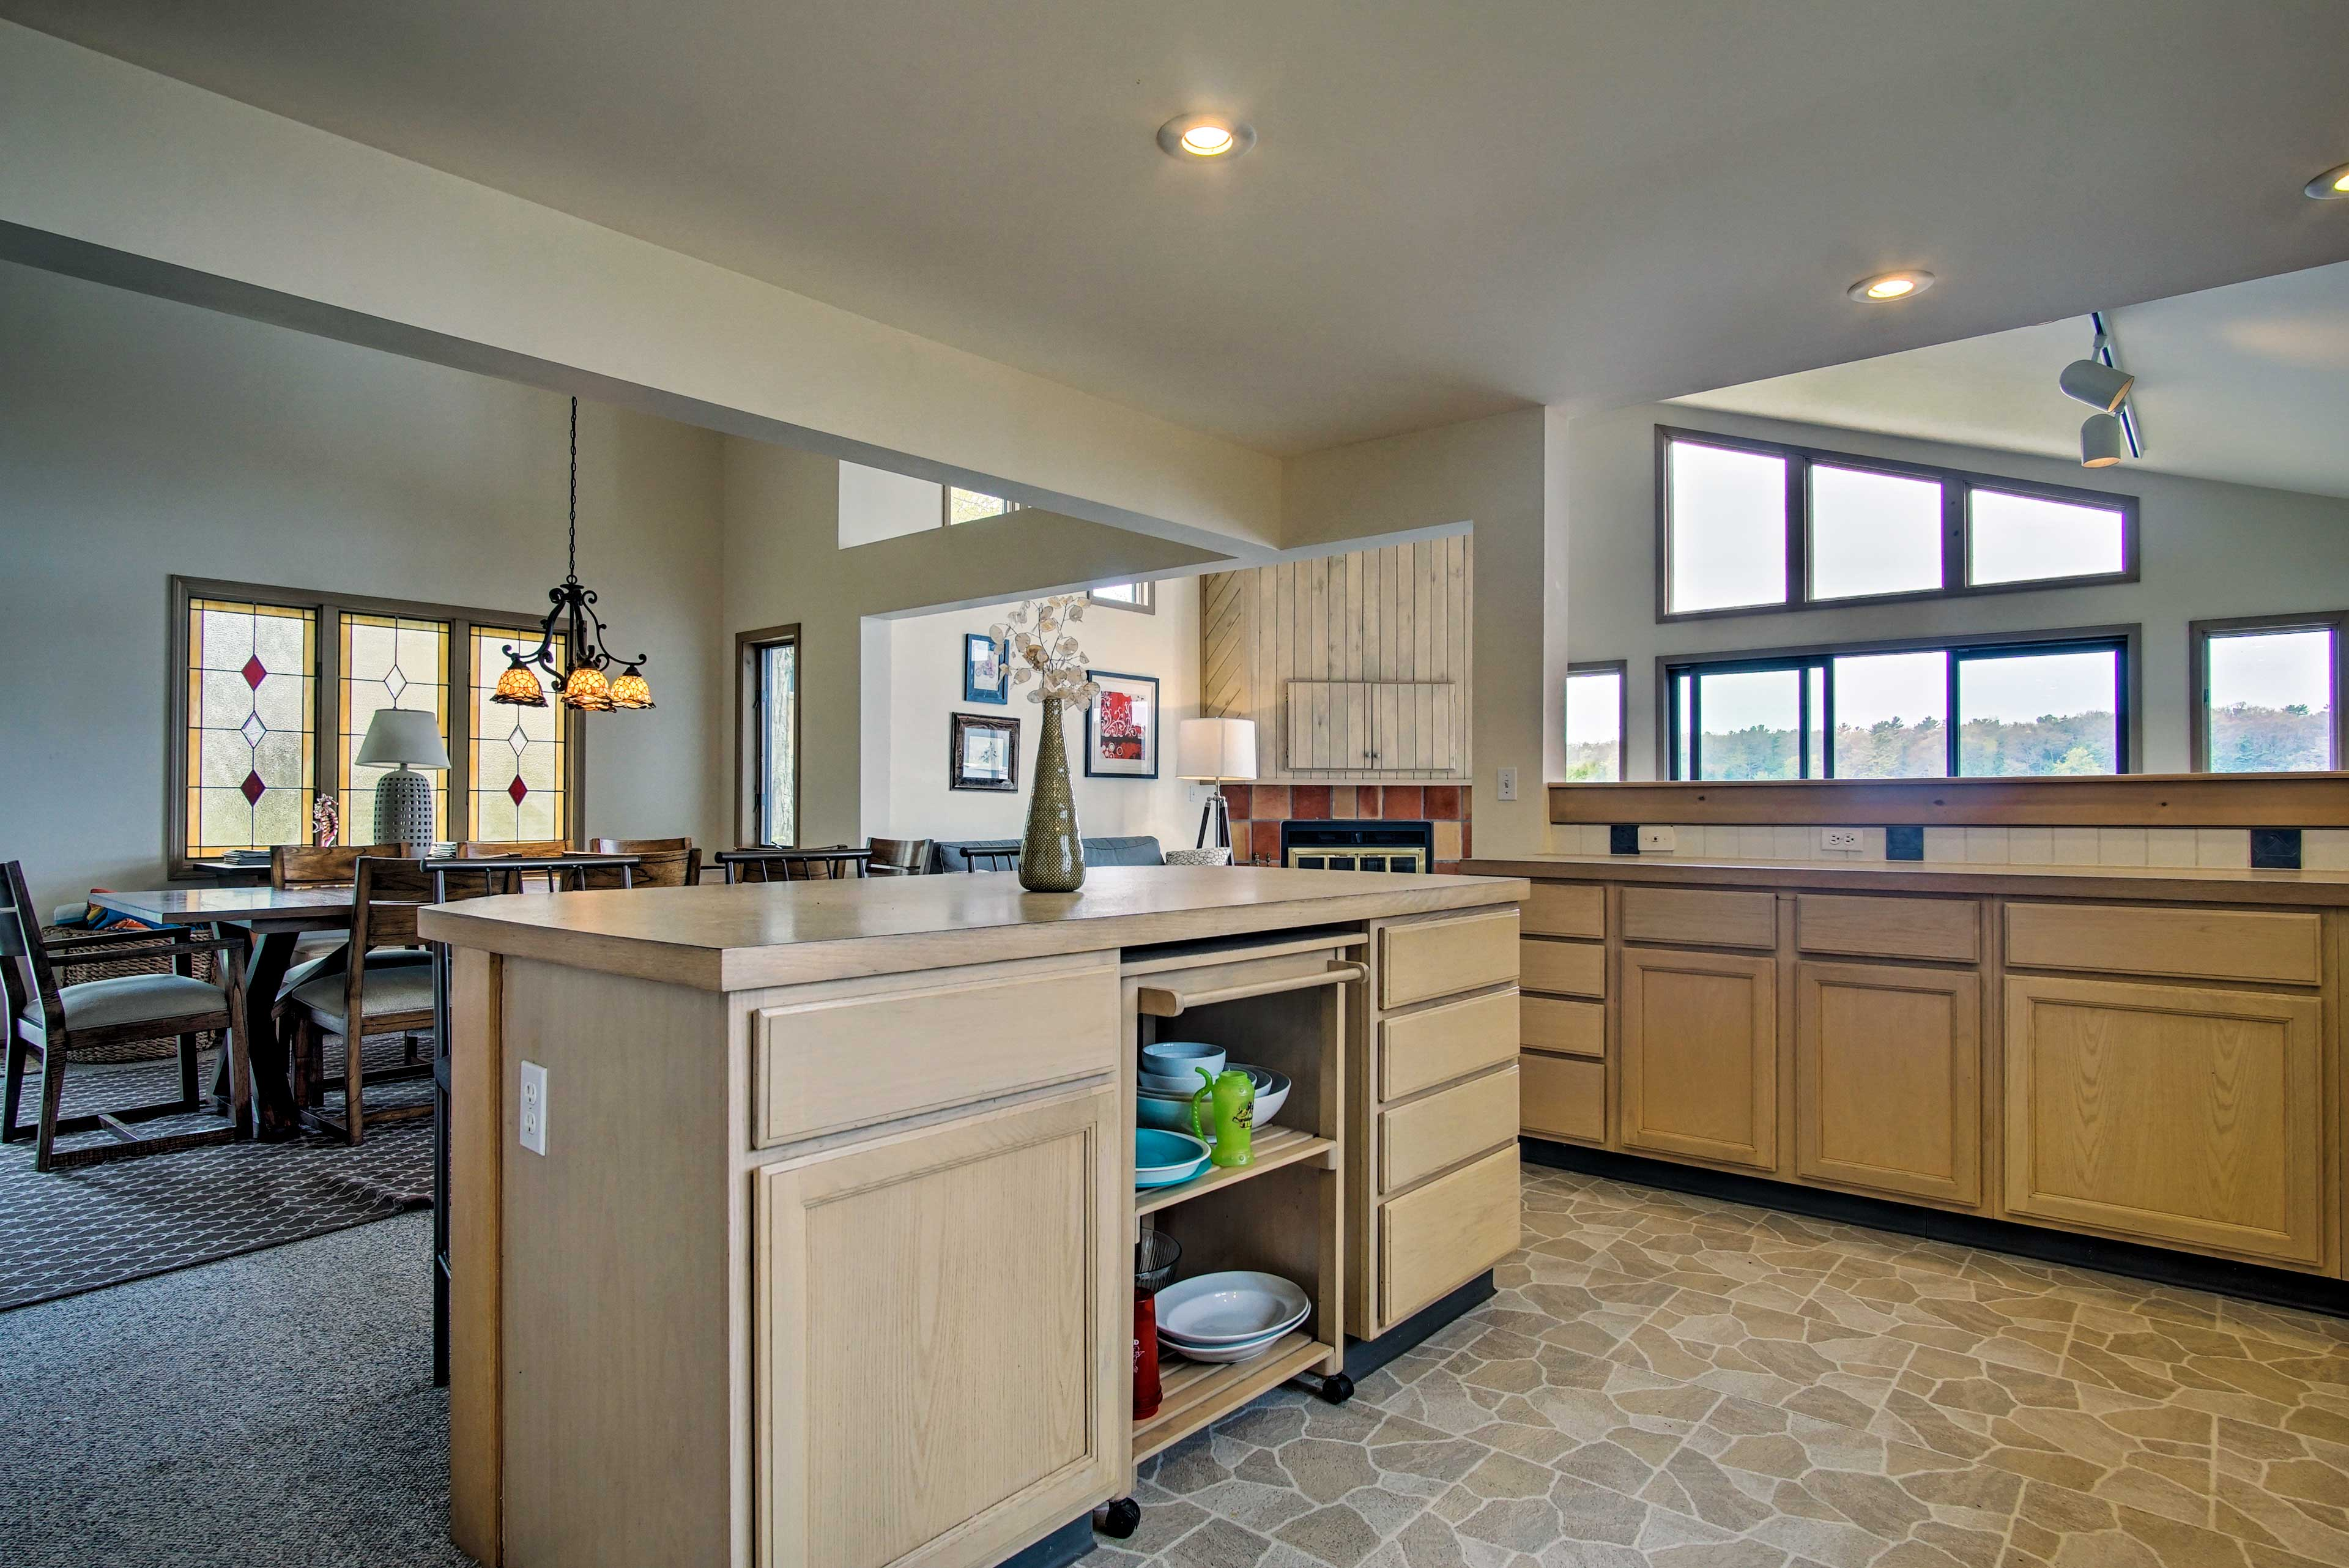 Ample counter space makes preparing meals easy.